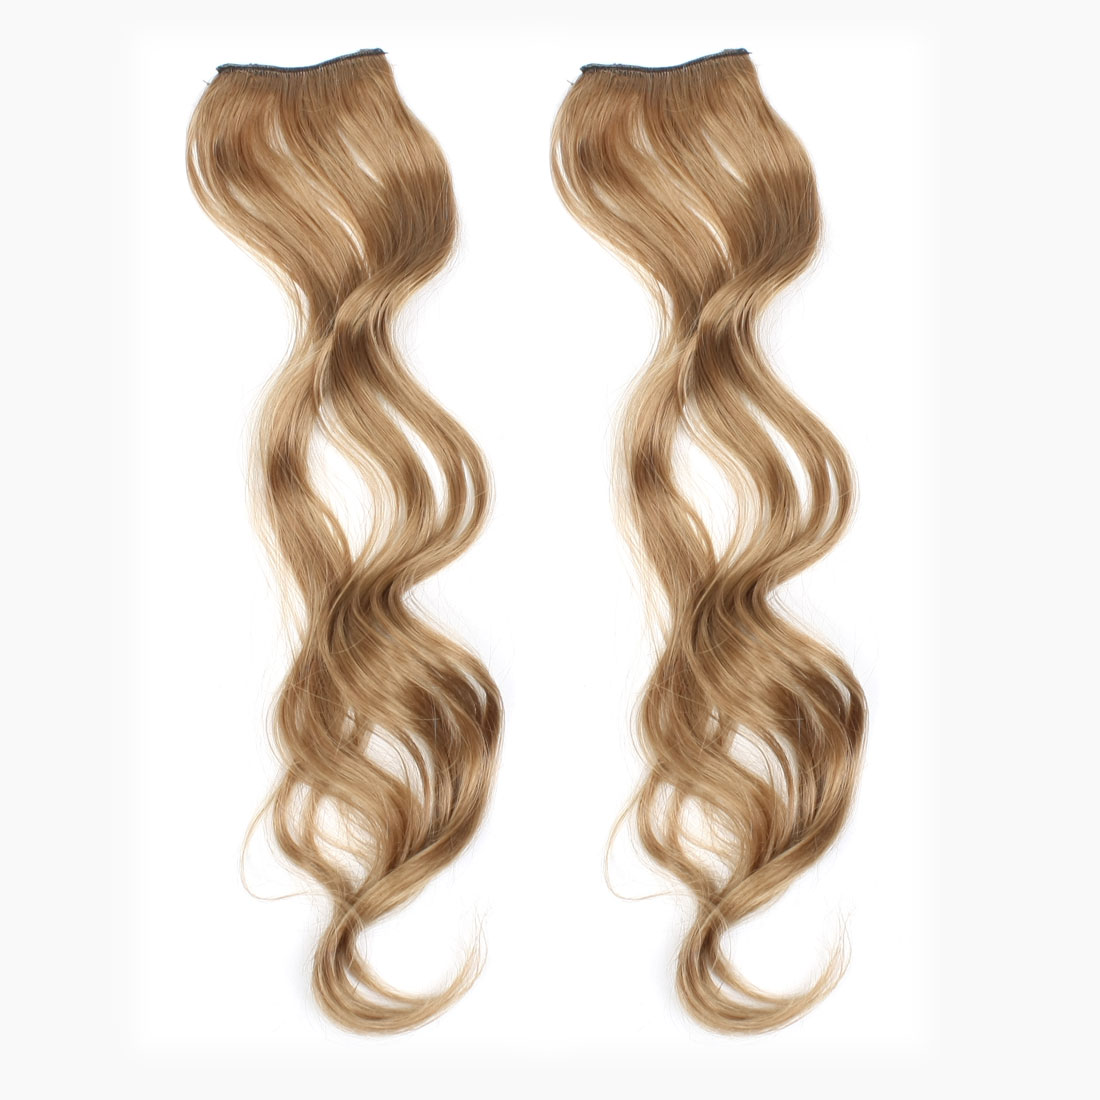 2 Pcs Lady Curl Style Ponytail Brown Long Wave Wig Hair Piece